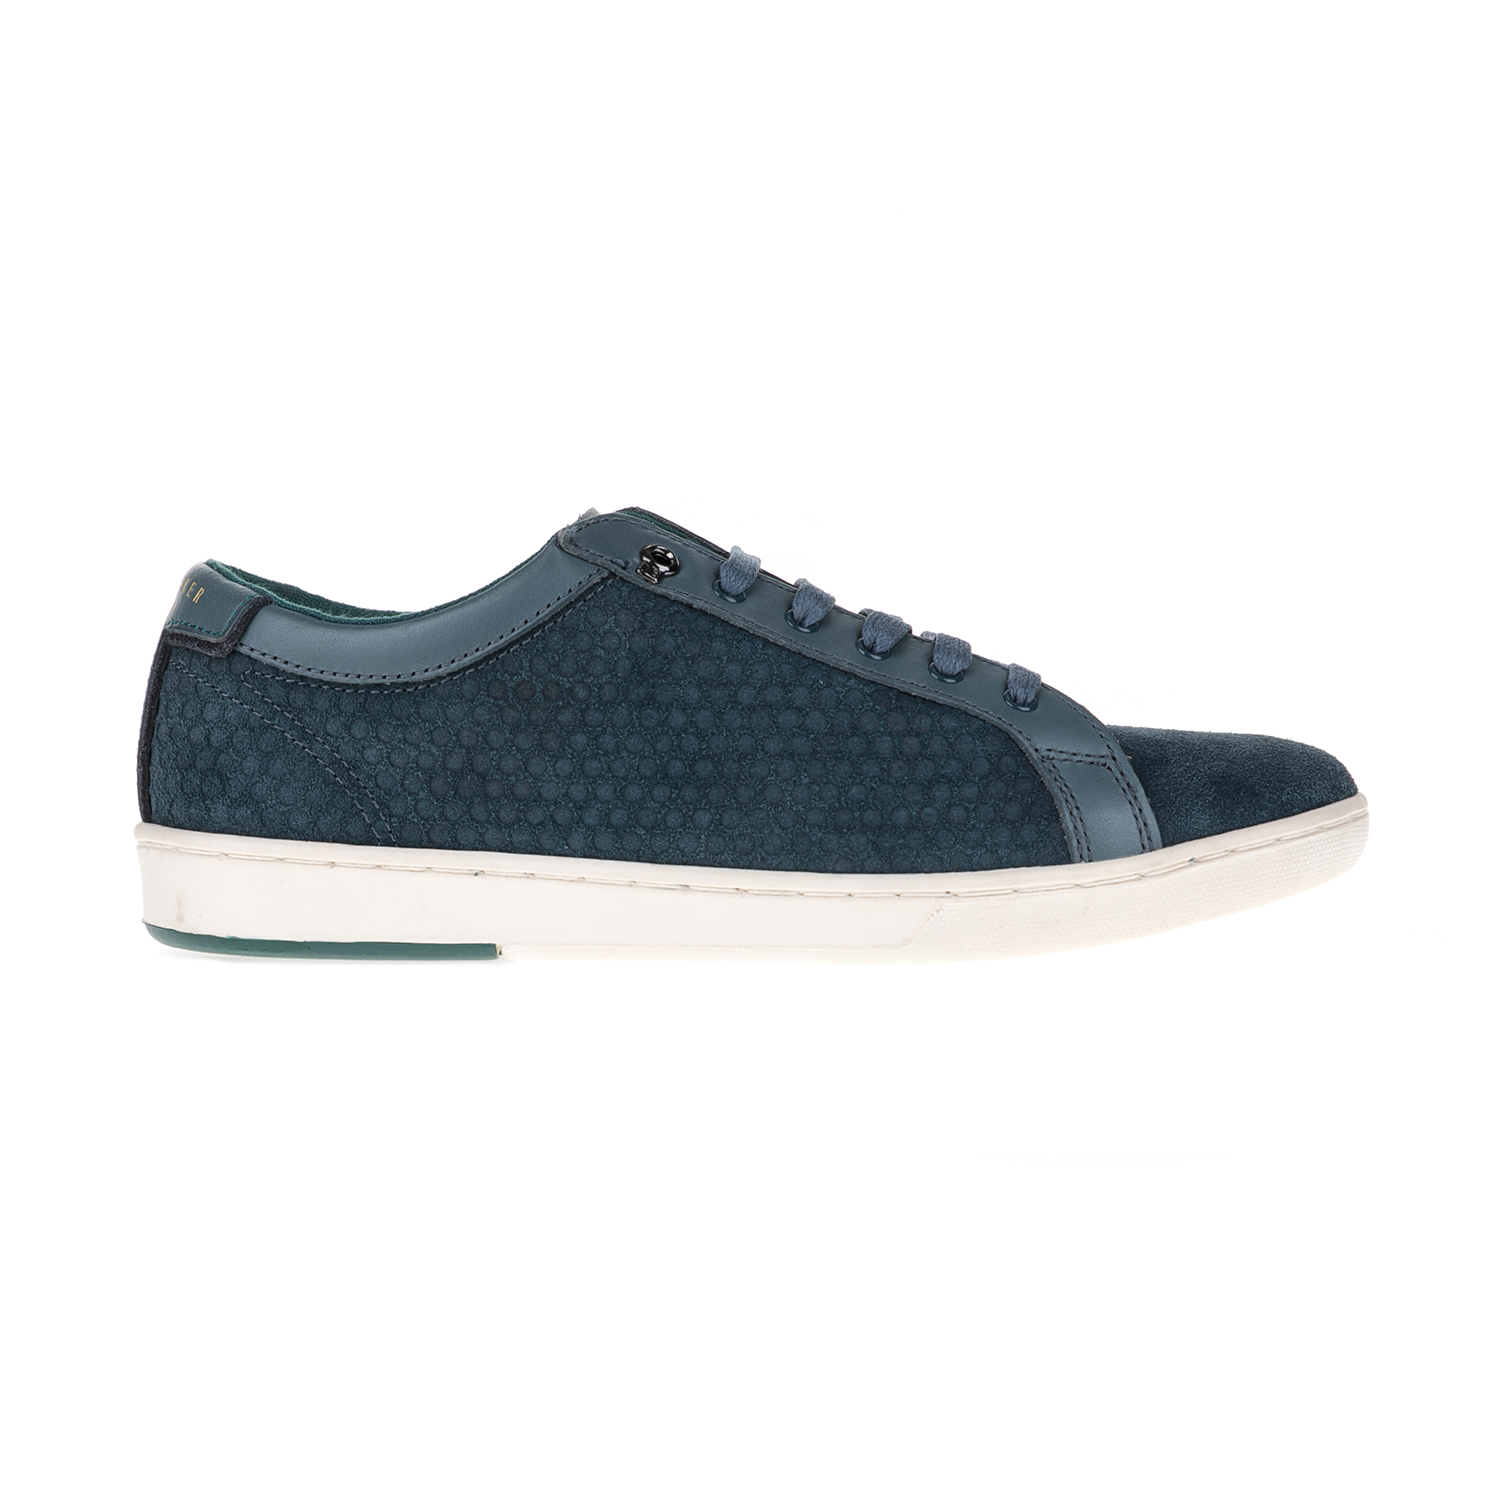 TED BAKER – Ανδρικά sneakers SLOWNE TED BAKER μπλε